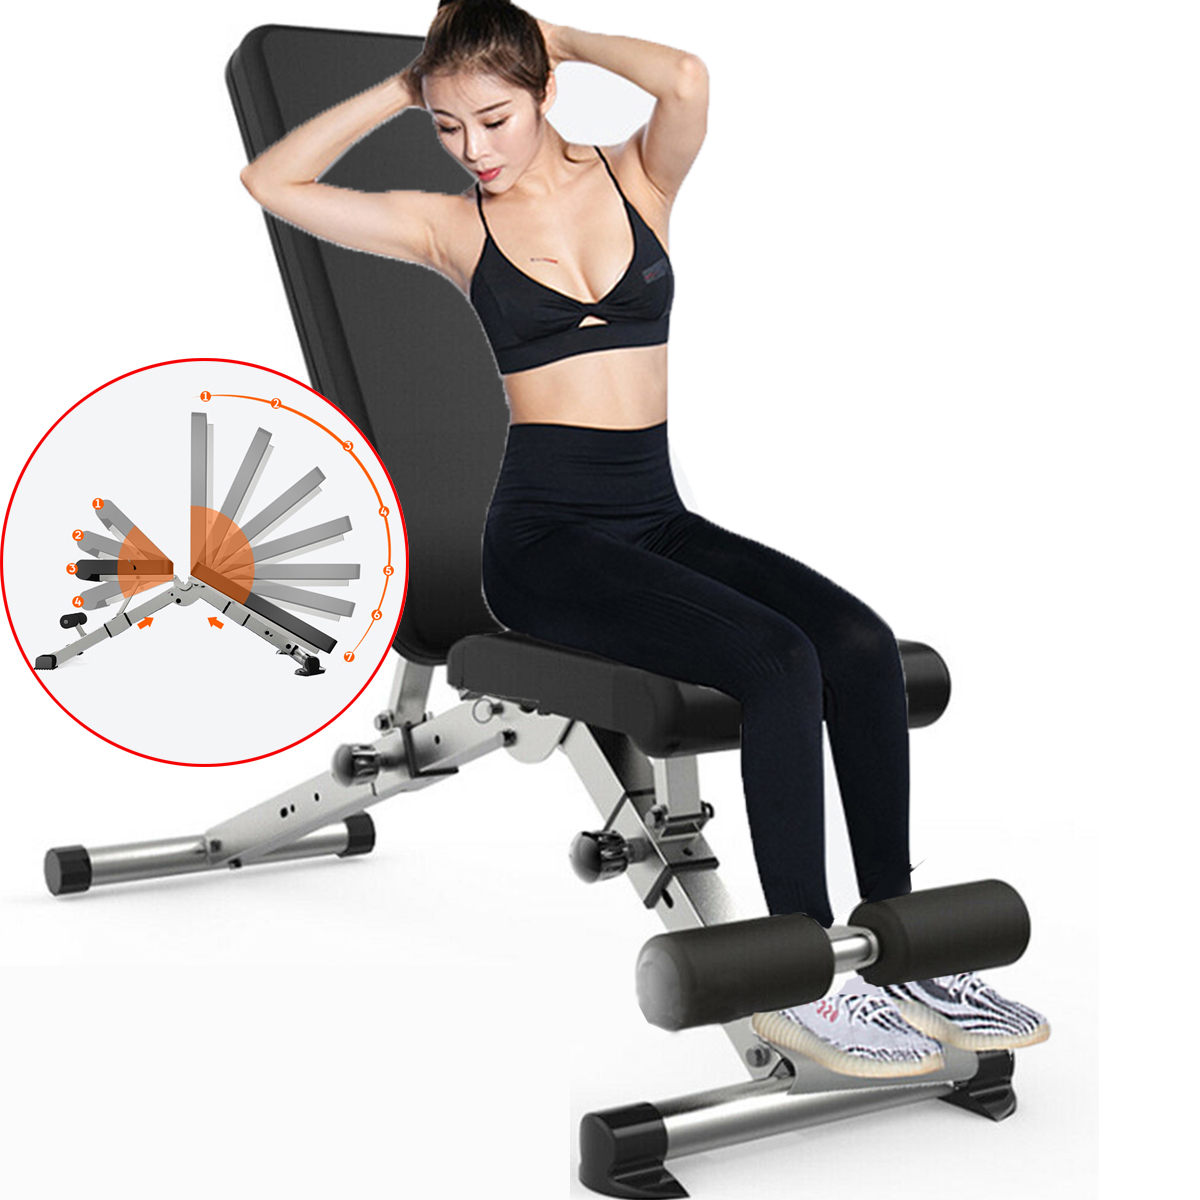 Multifunctional Foldable Dumbbell Bench 7 Gear Backrest Sit up AB Abdominal Fitness Bench Weightlifting Training Equipment